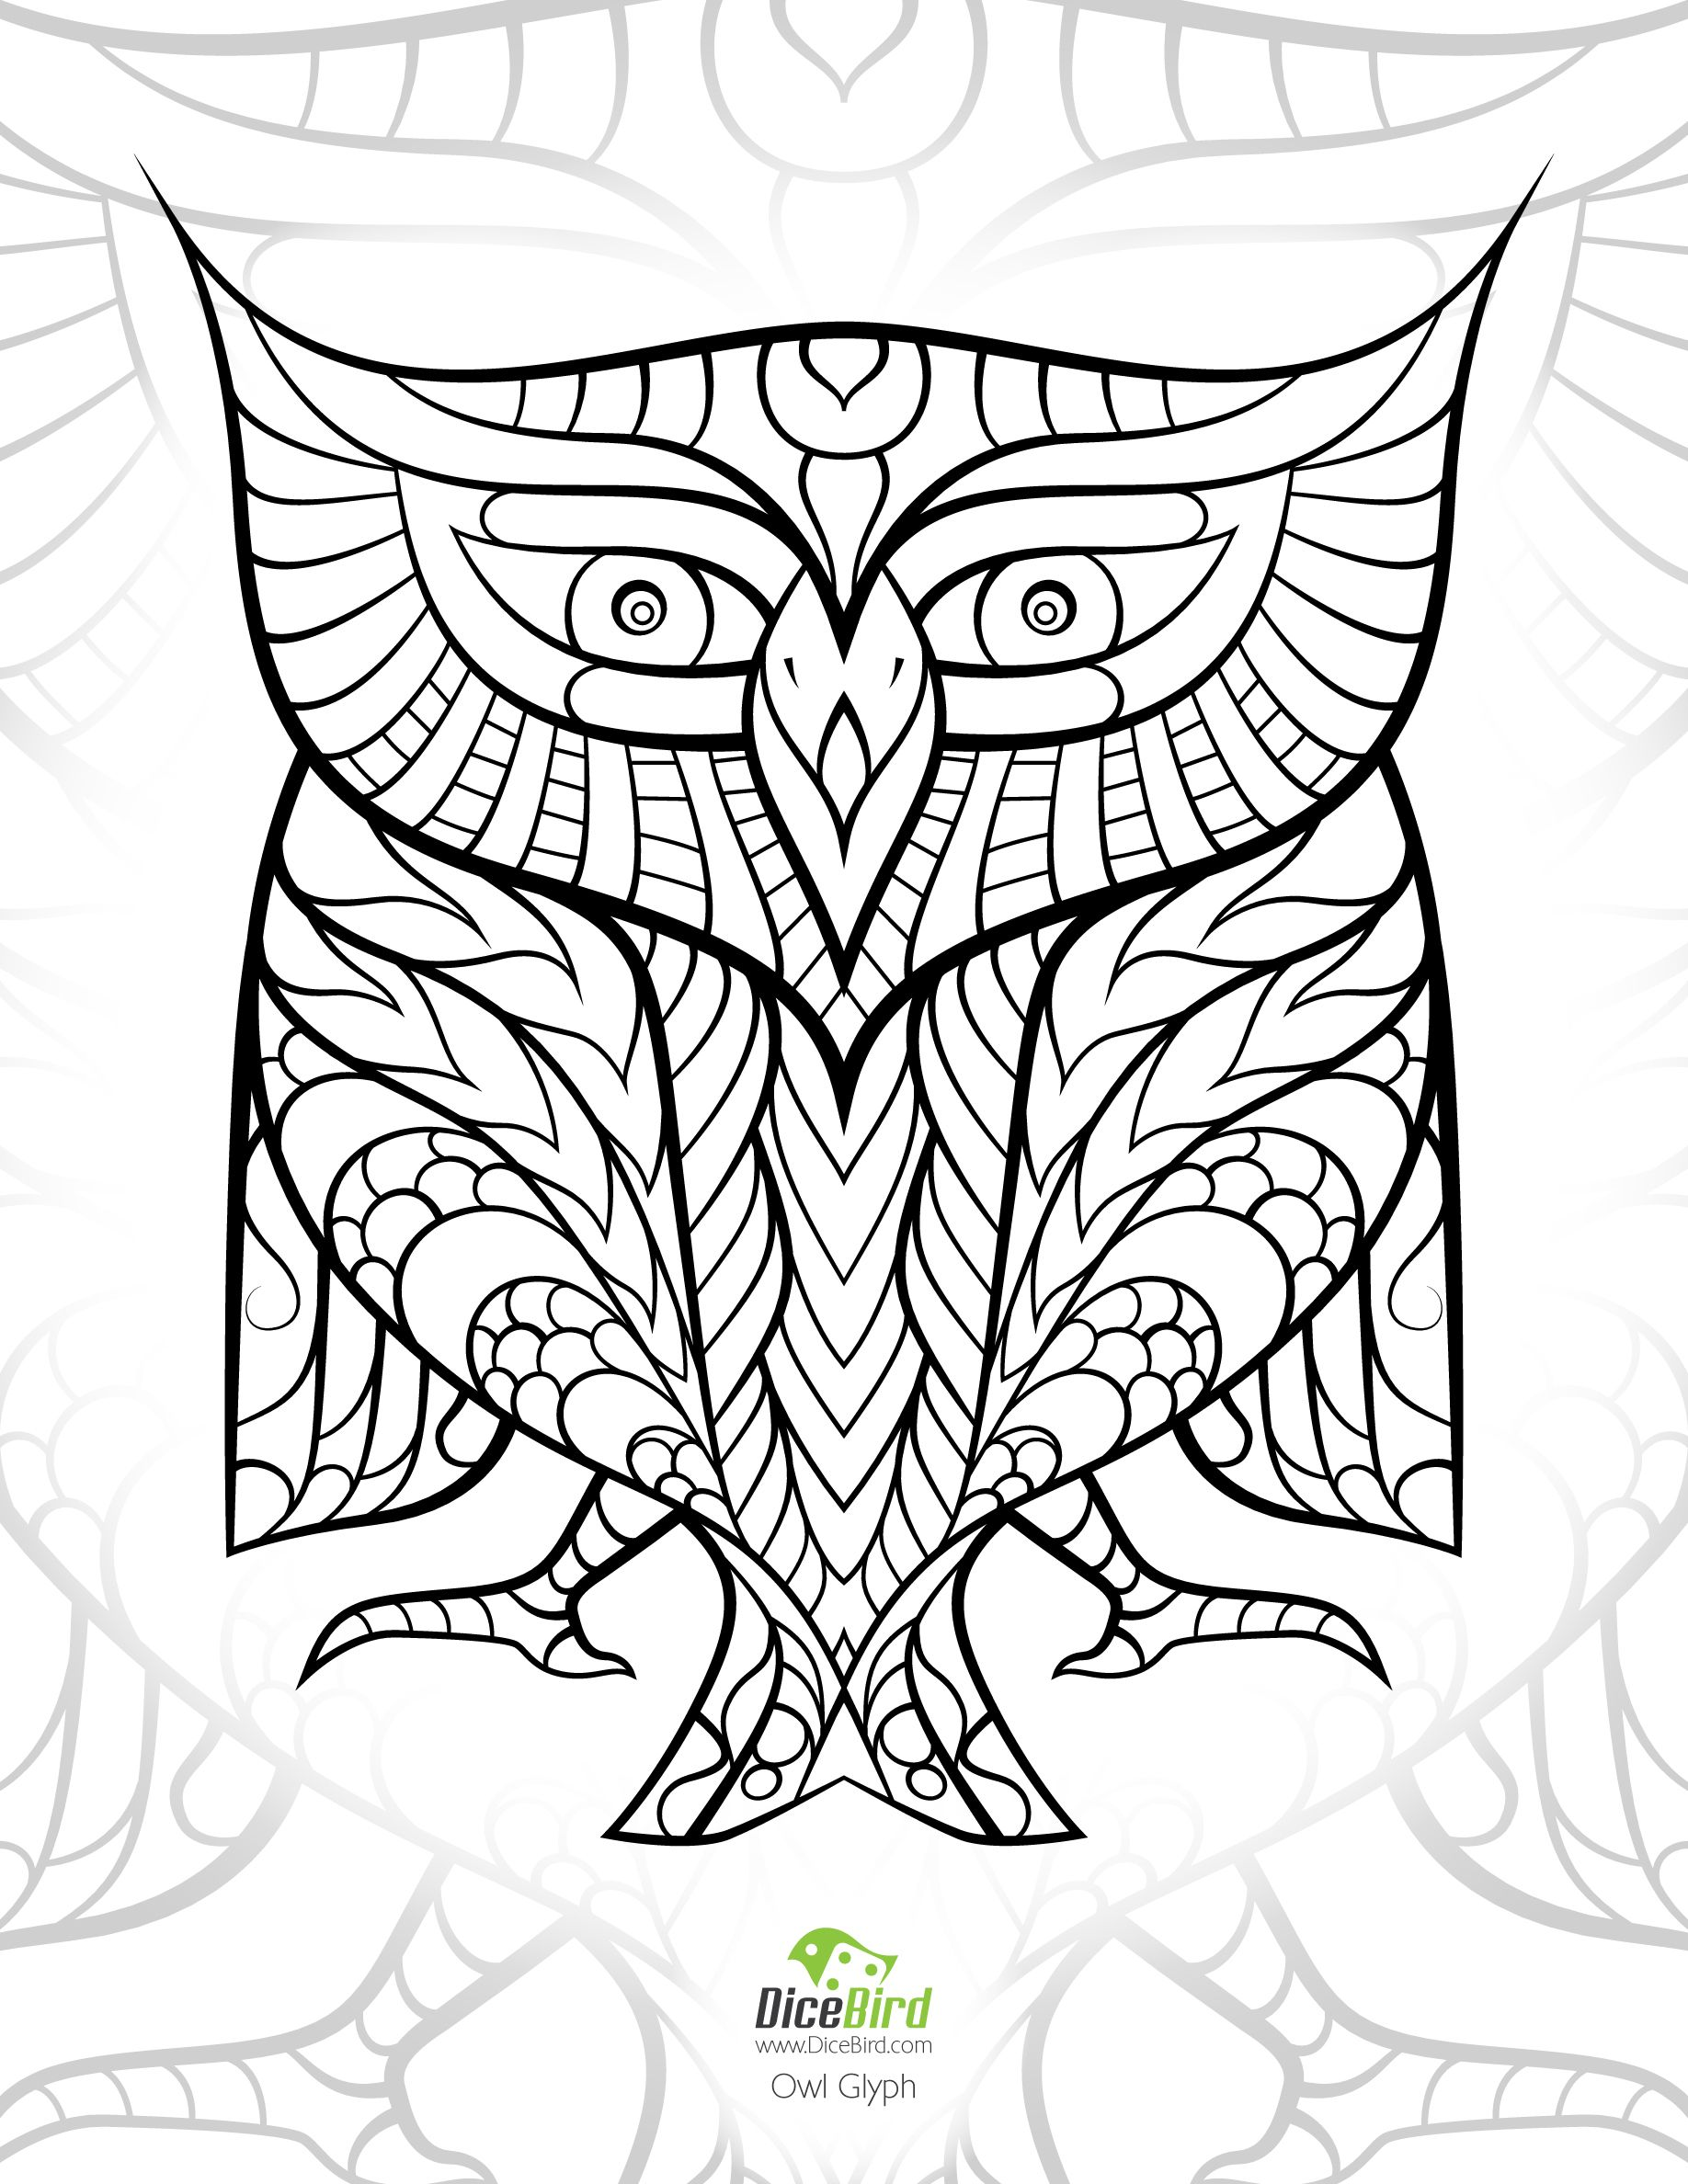 Egyptian Hieroglyph Owl Dicebird Owlglyph Coloring Books For Adults Free Download